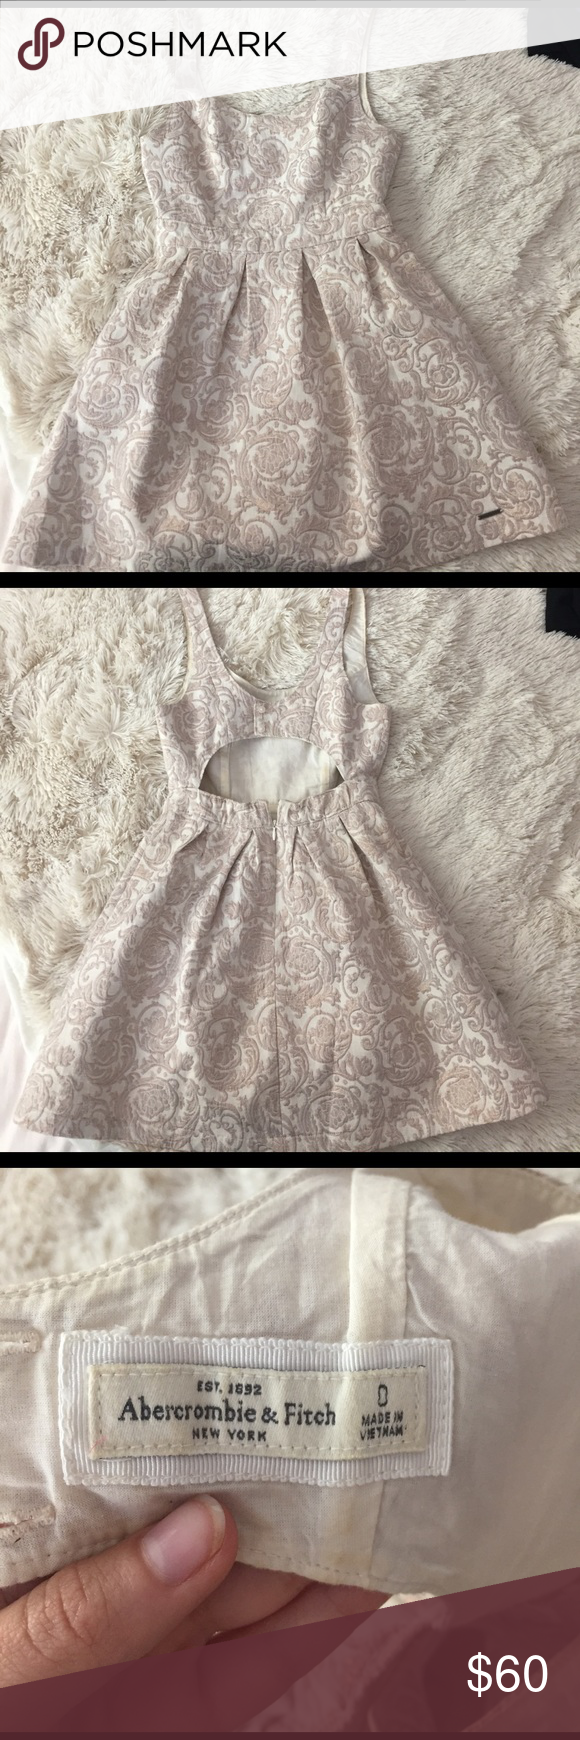 Abercrombie and Fitch gold and ivory detail dress Beautiful dress perfect for a formal dance, party or event. Tight at the waist. Ivory with golden detailing throughout. Good condition only worn a few times. Abercrombie & Fitch Dresses Mini